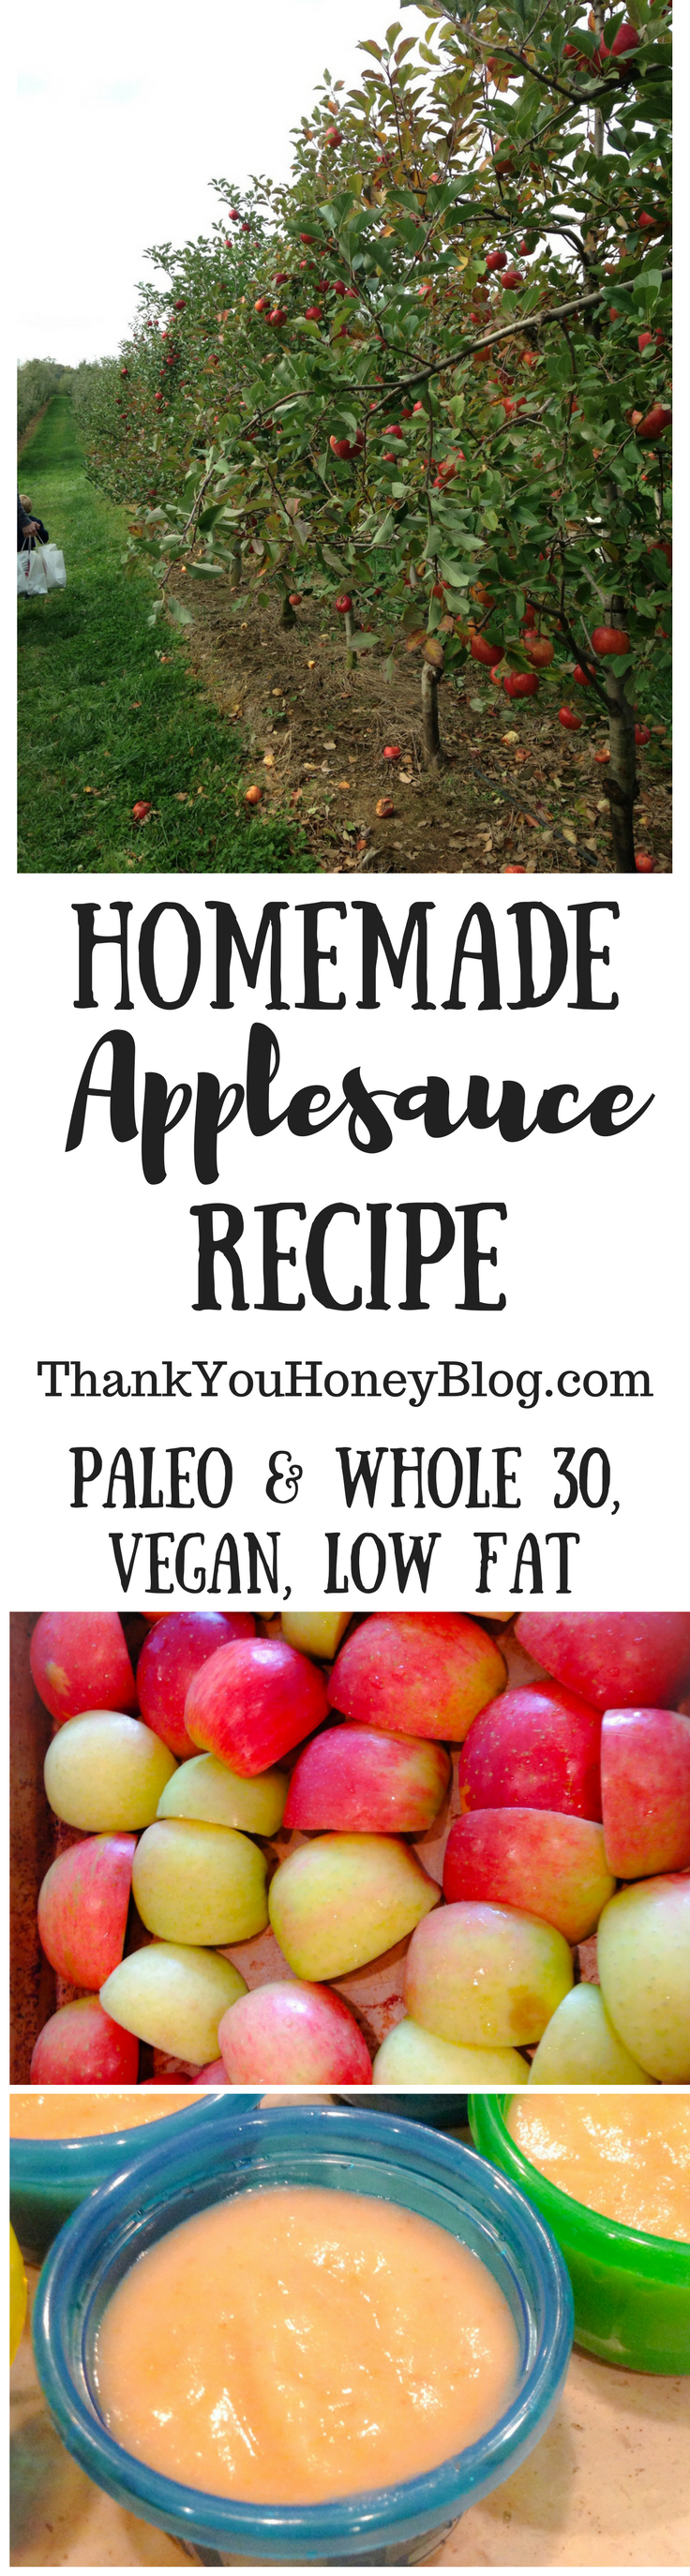 Homemade Applesauce Recipe